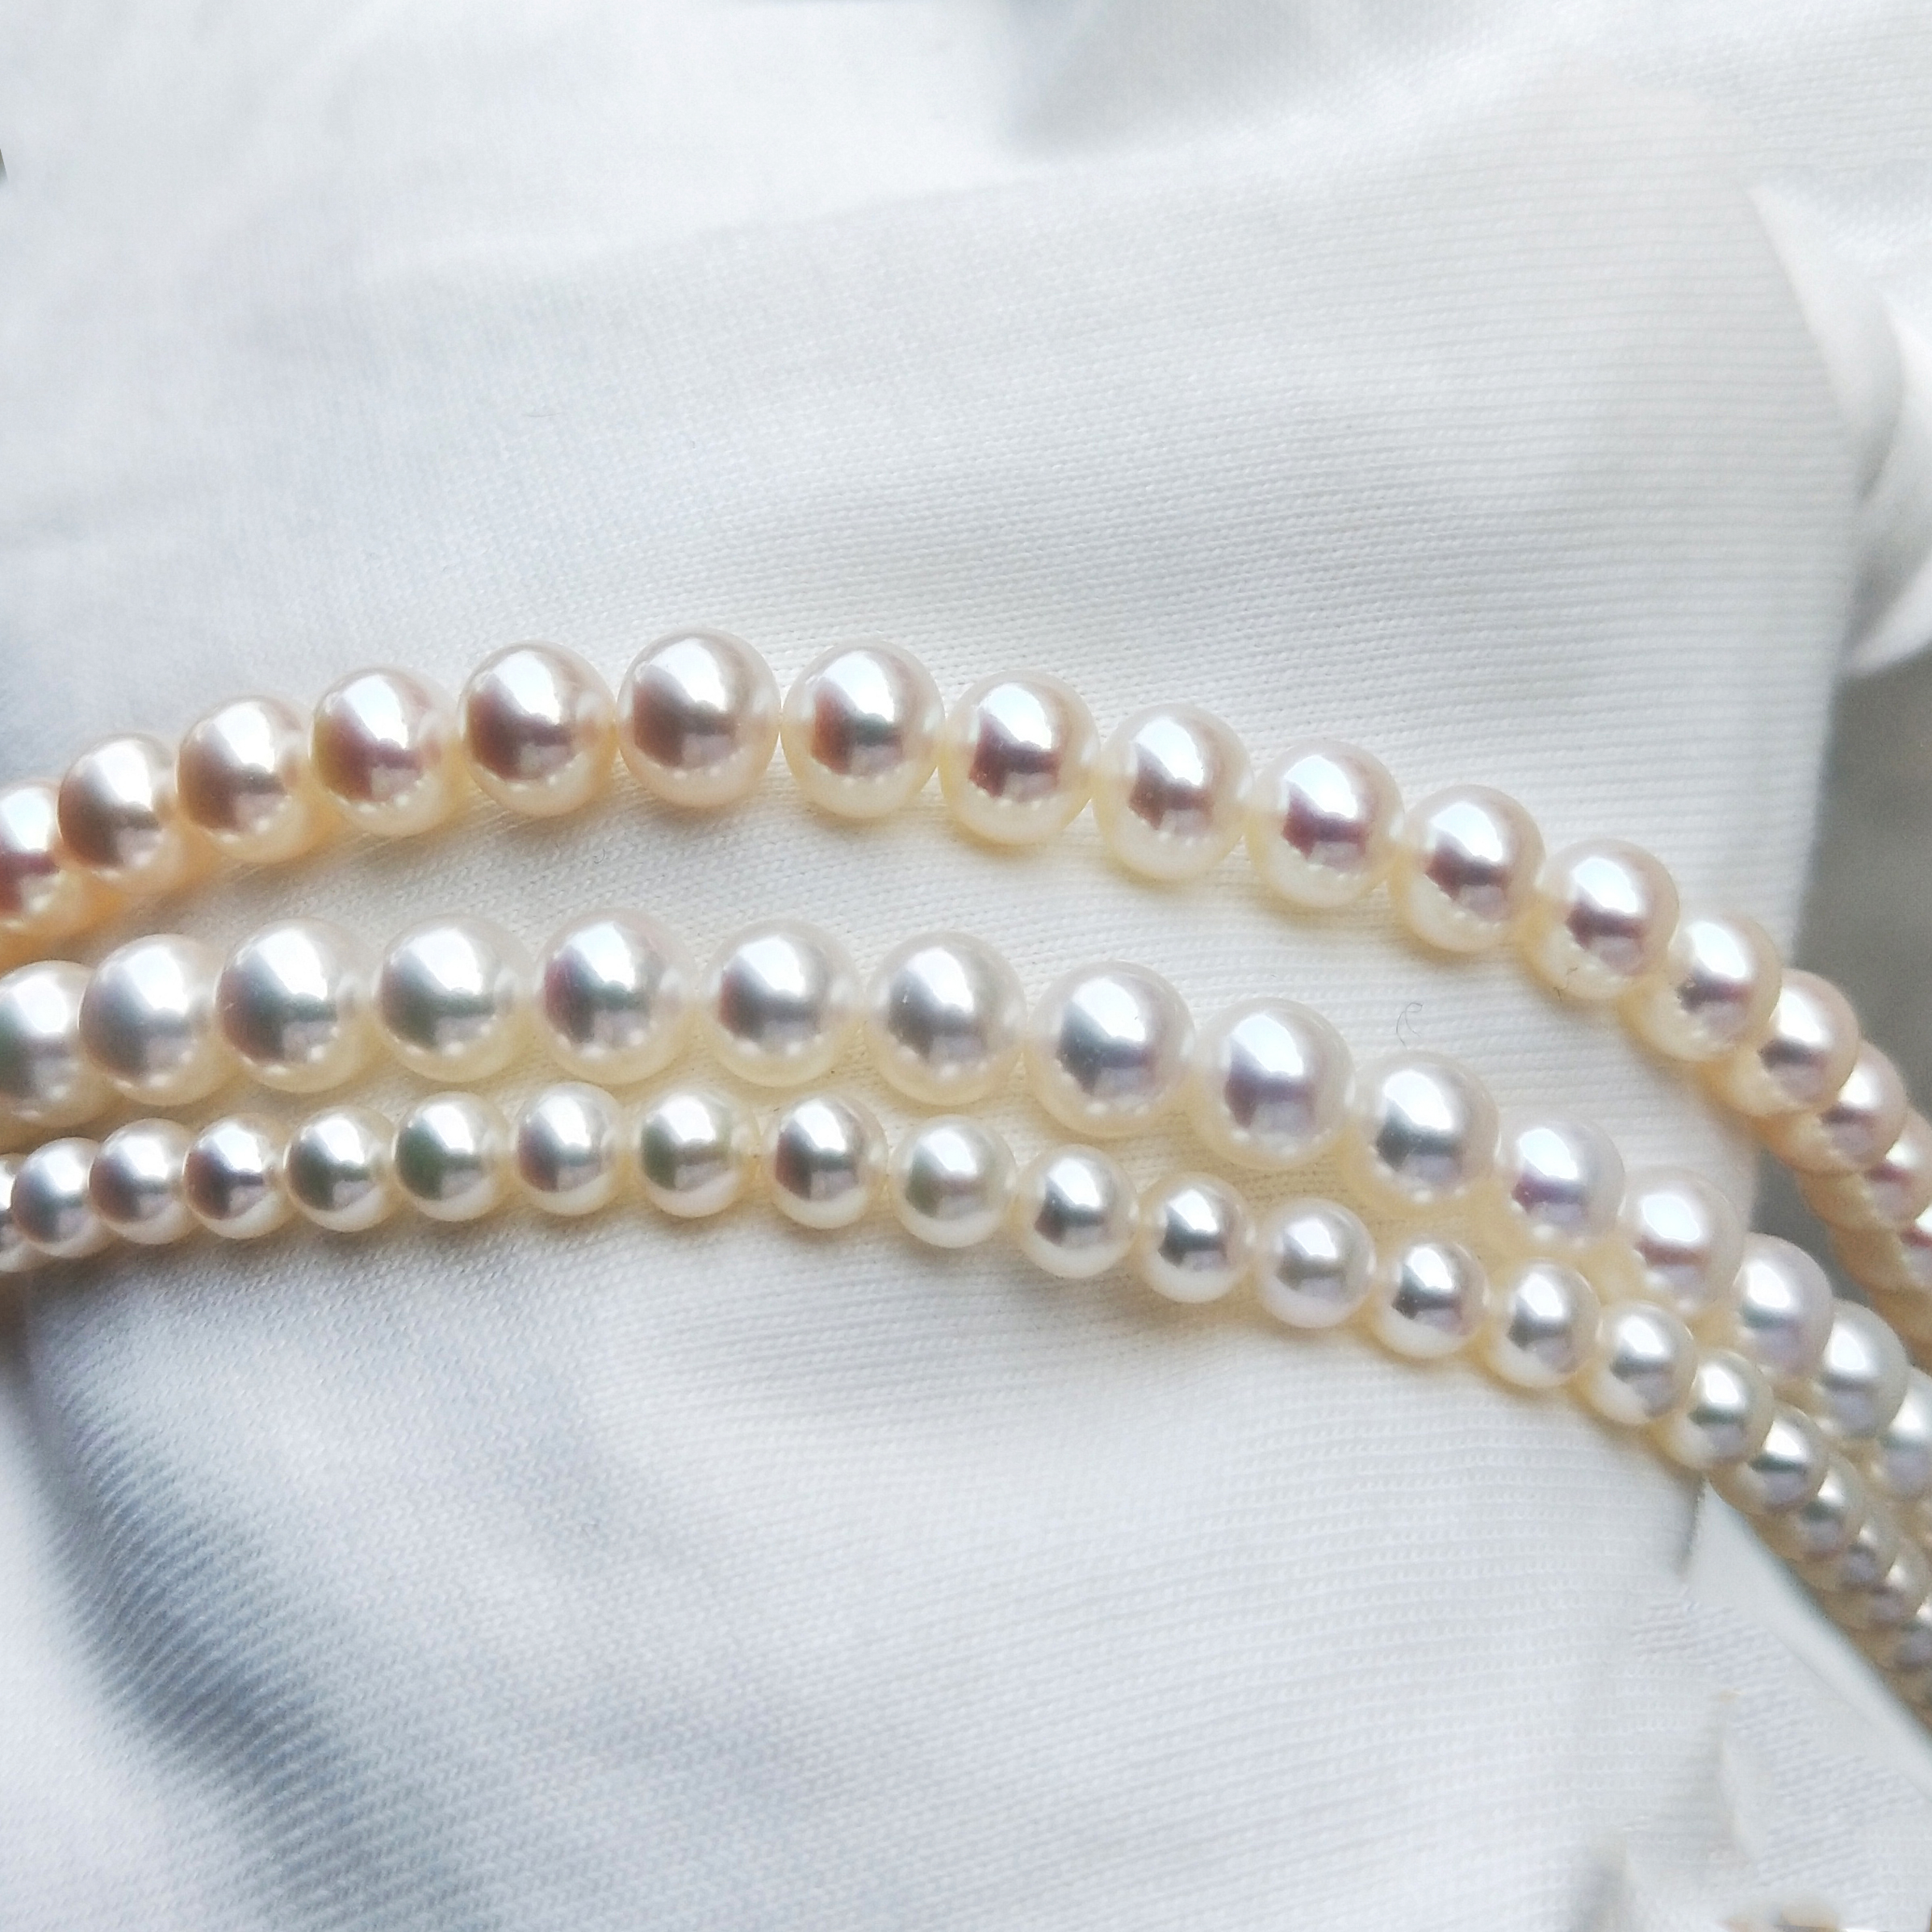 Natural sea water pearl necklace choker fashionable young clavicle chain with round white light for mother and wife